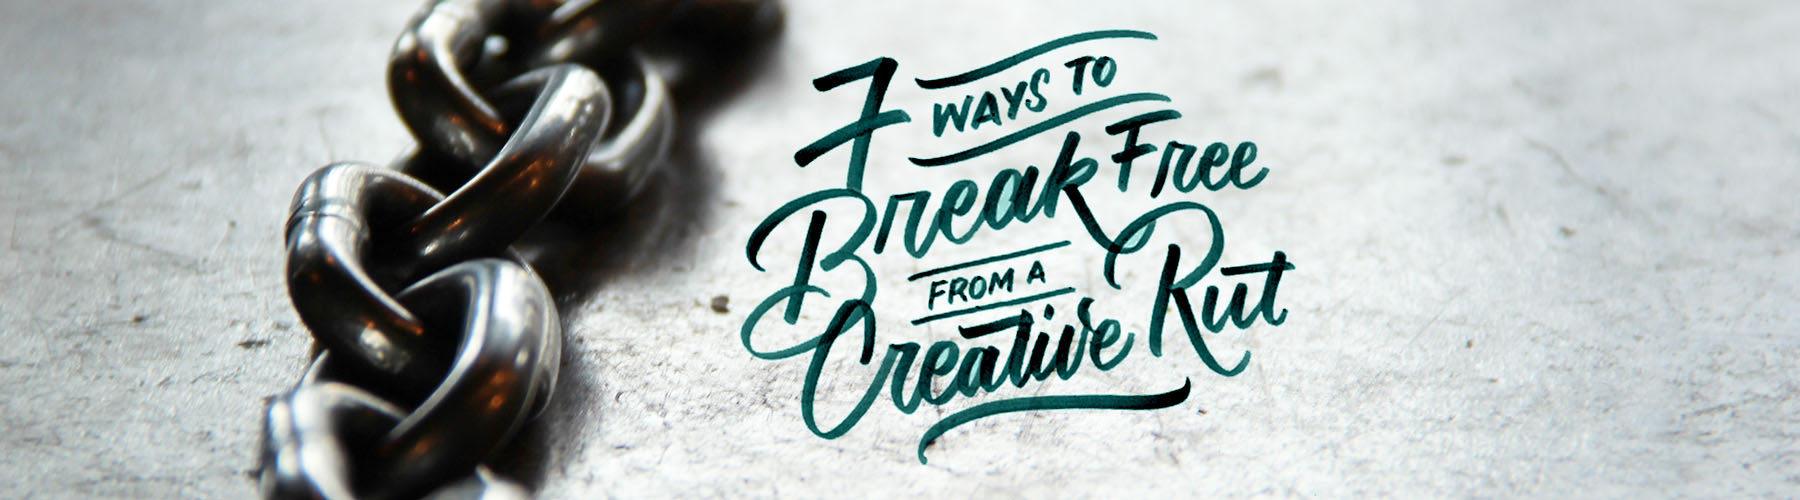 7-Ways-to-Break-Free-from-a-Creative-Rut.jpg